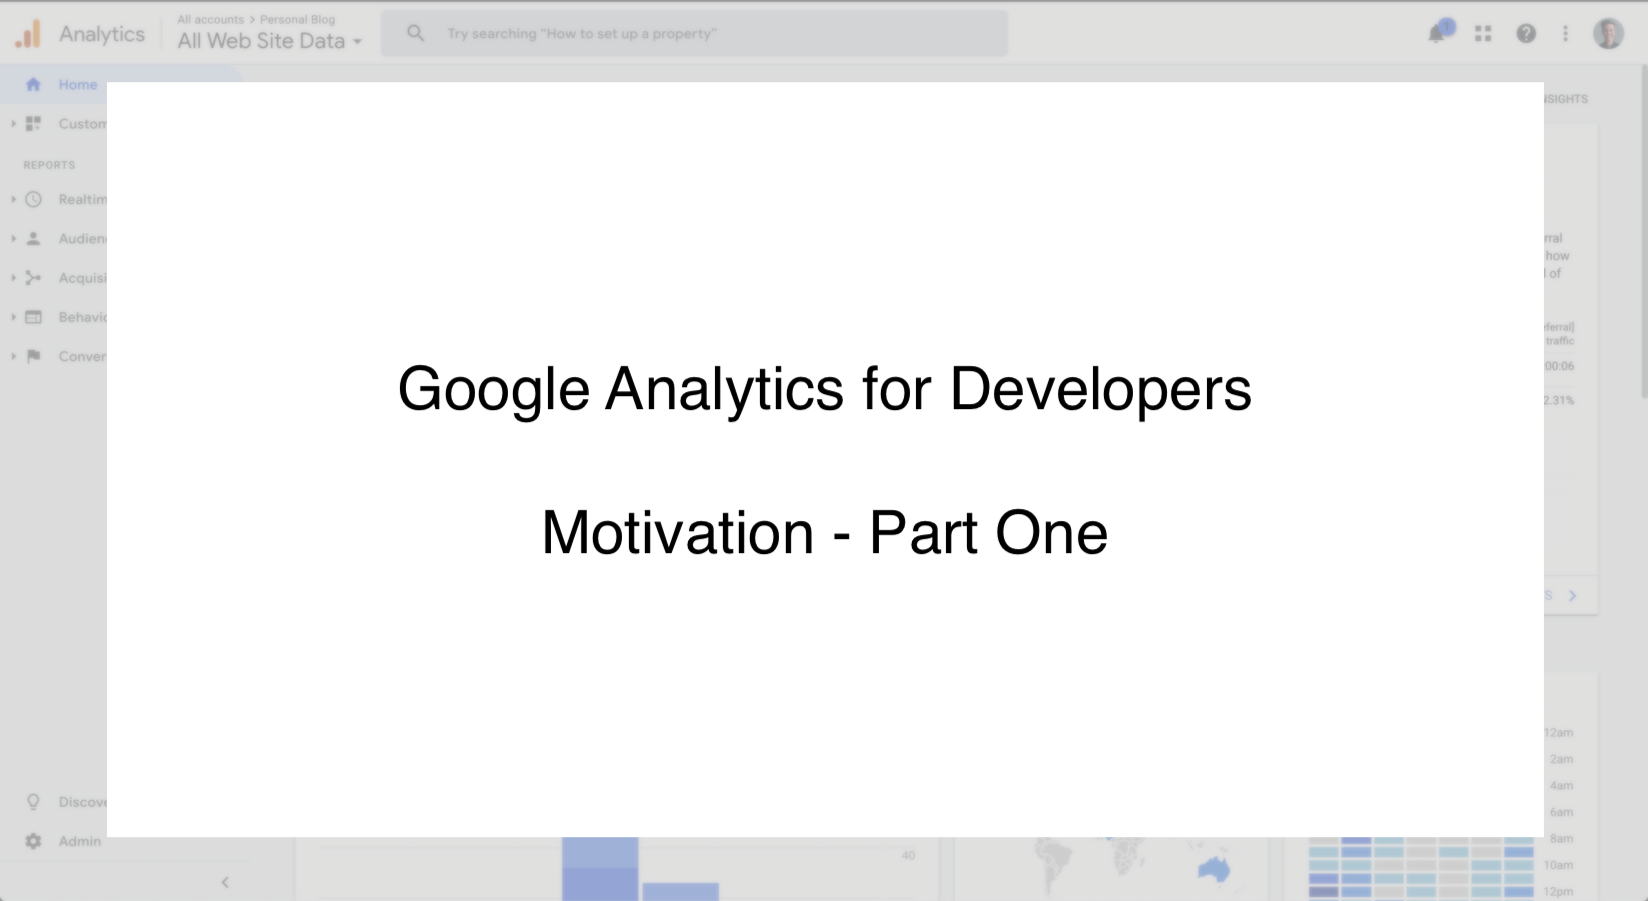 A Developer's Guide - Building Great Software Incrementally with Analytics